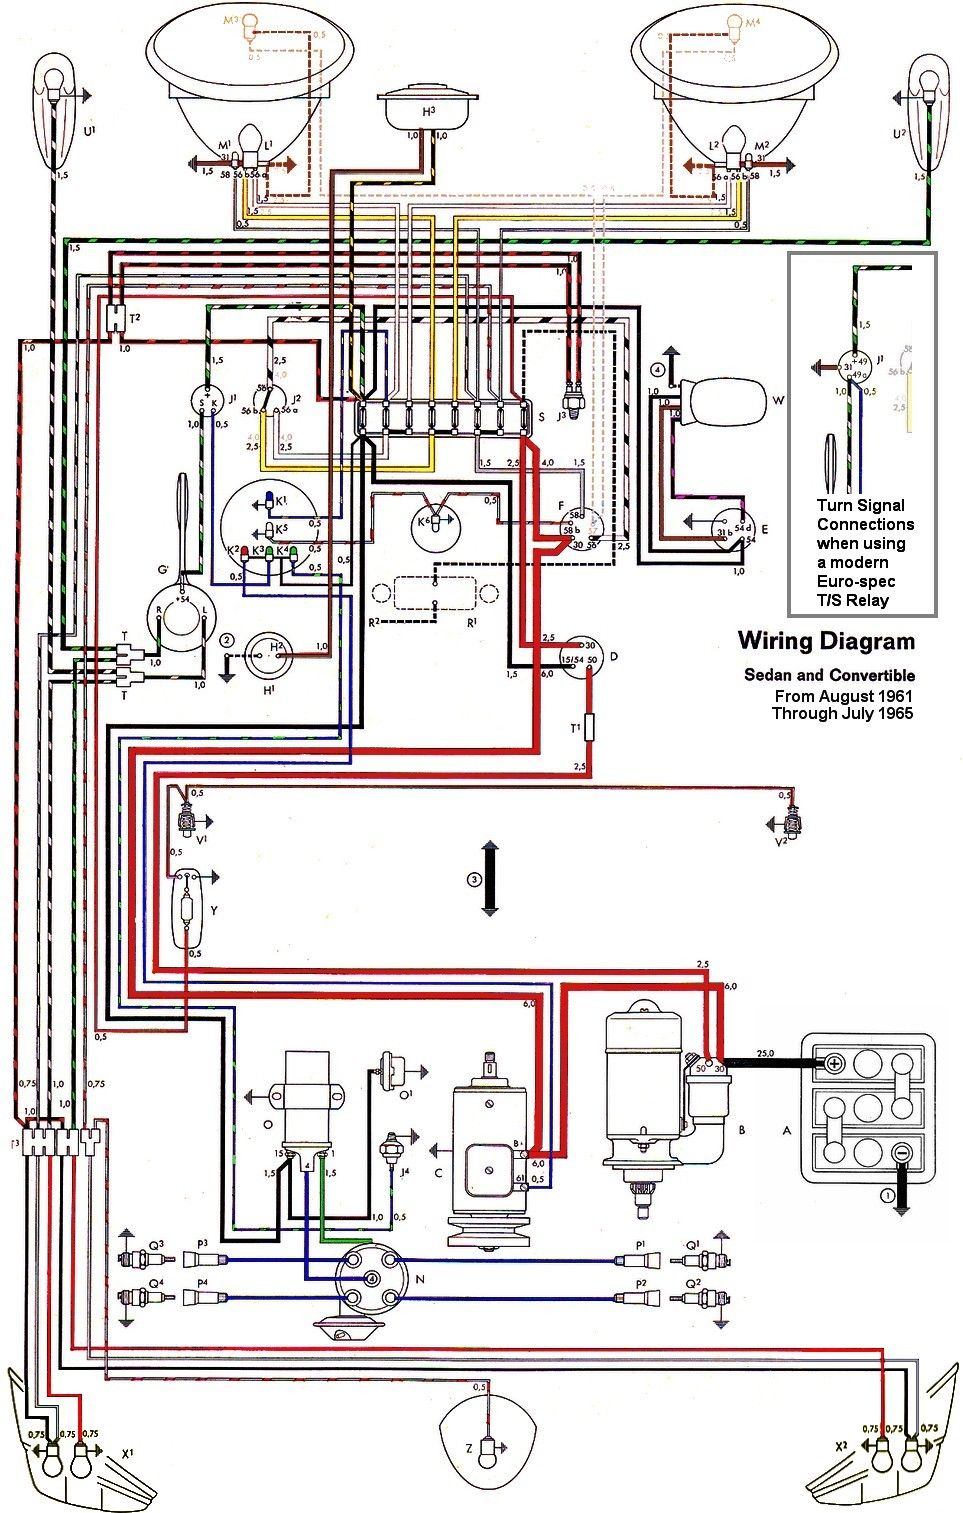 wiring diagram vw beetle sedan and convertible 1961 1965 vw rh pinterest com 74 Super Beetle Wiring Diagram 1959 VW Beetle Wiring Diagram